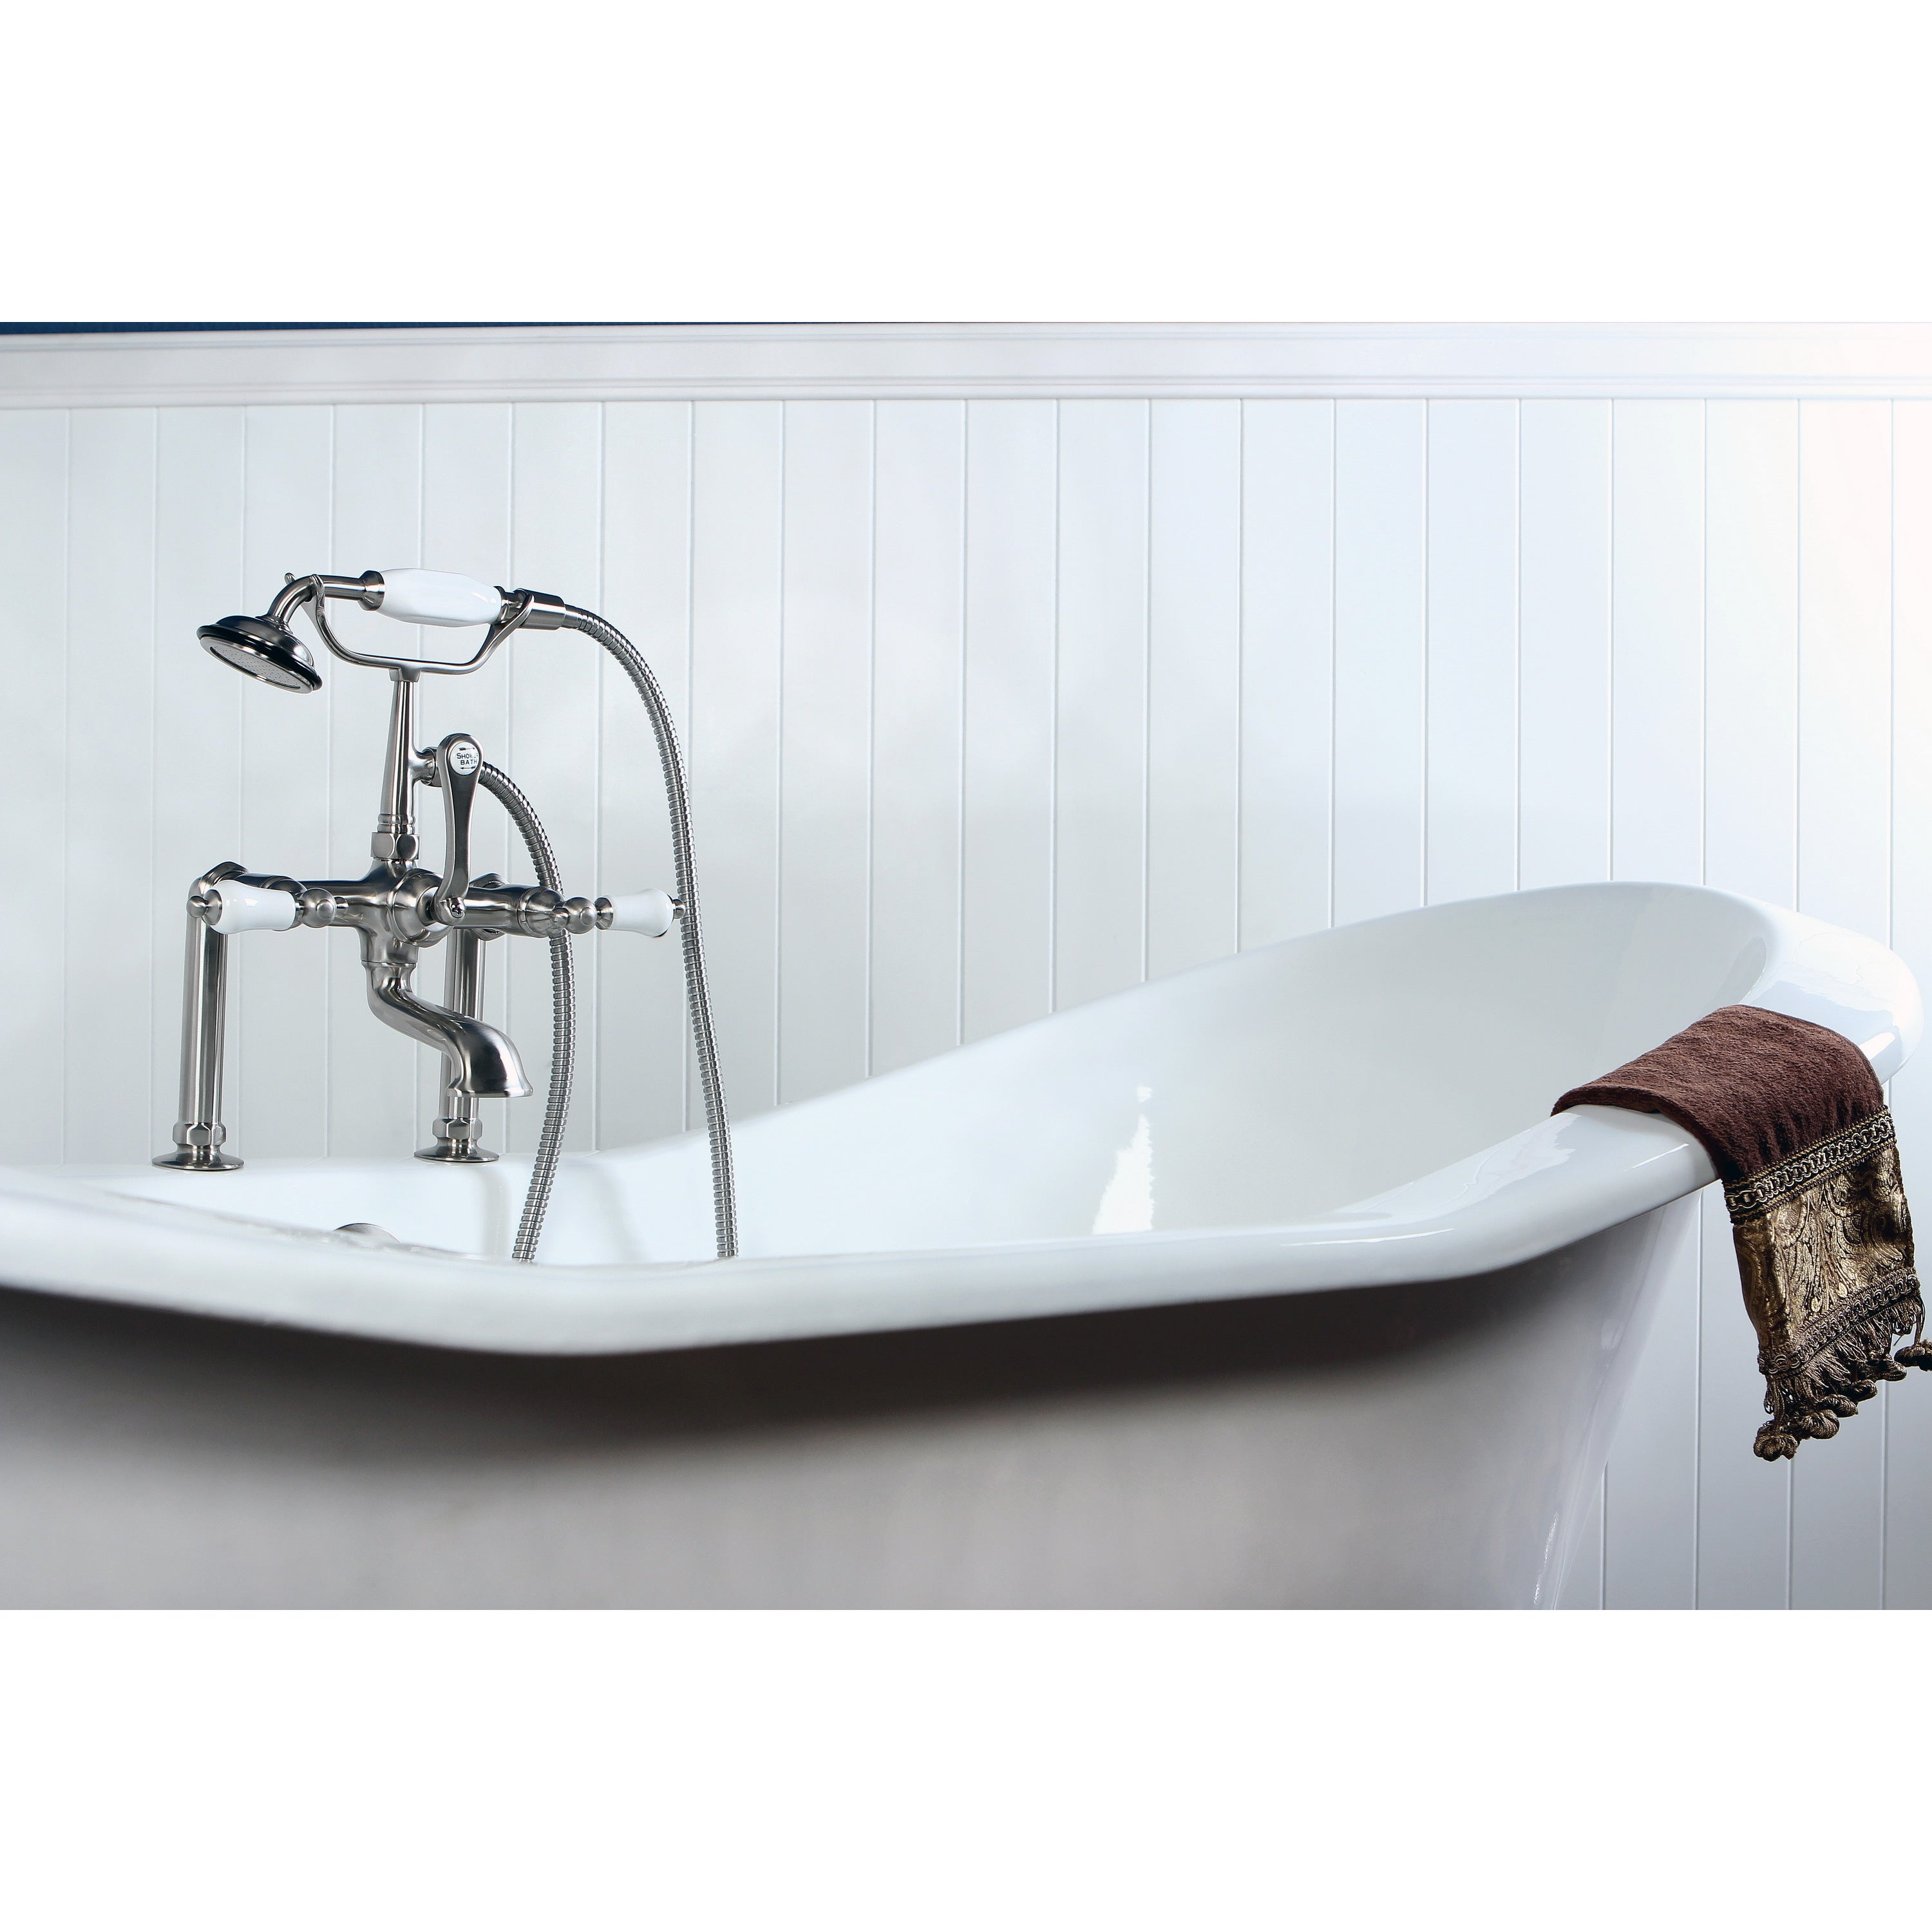 Deck Mount Brushed Nickel Clawfoot Tub Faucet With Hand Shower